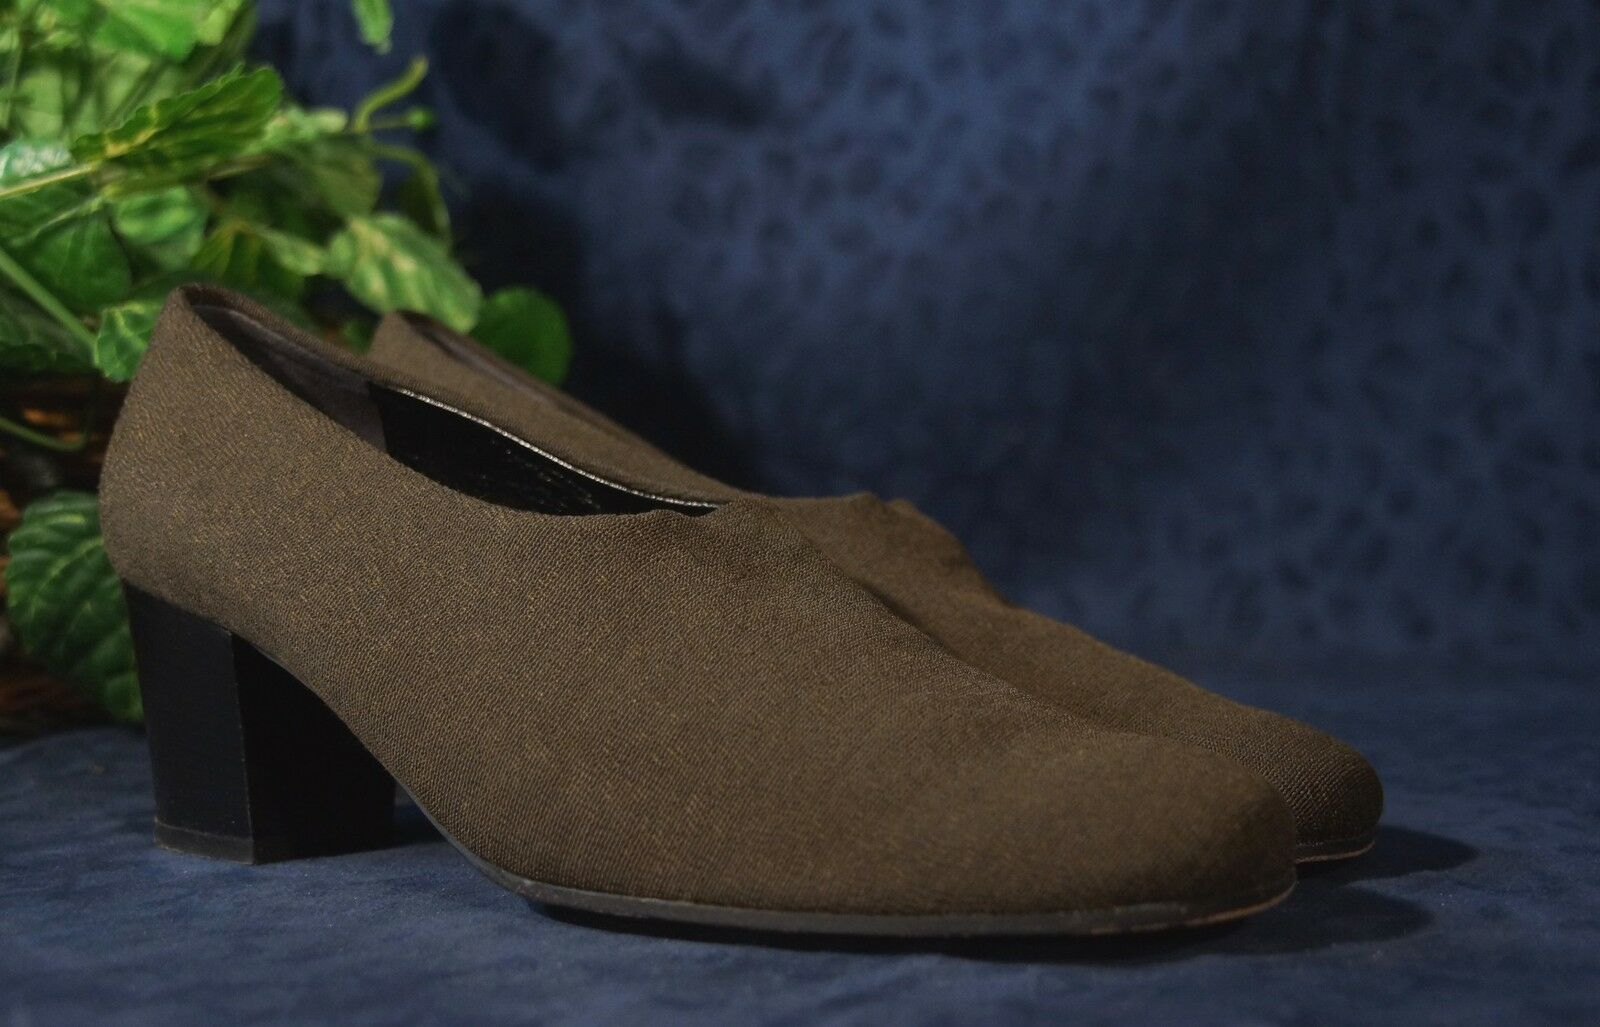 vendita calda online Very Nice Marrone Fabric ROBERT CLERGERIE Pumps US 8 8 8  risparmia il 35% - 70% di sconto